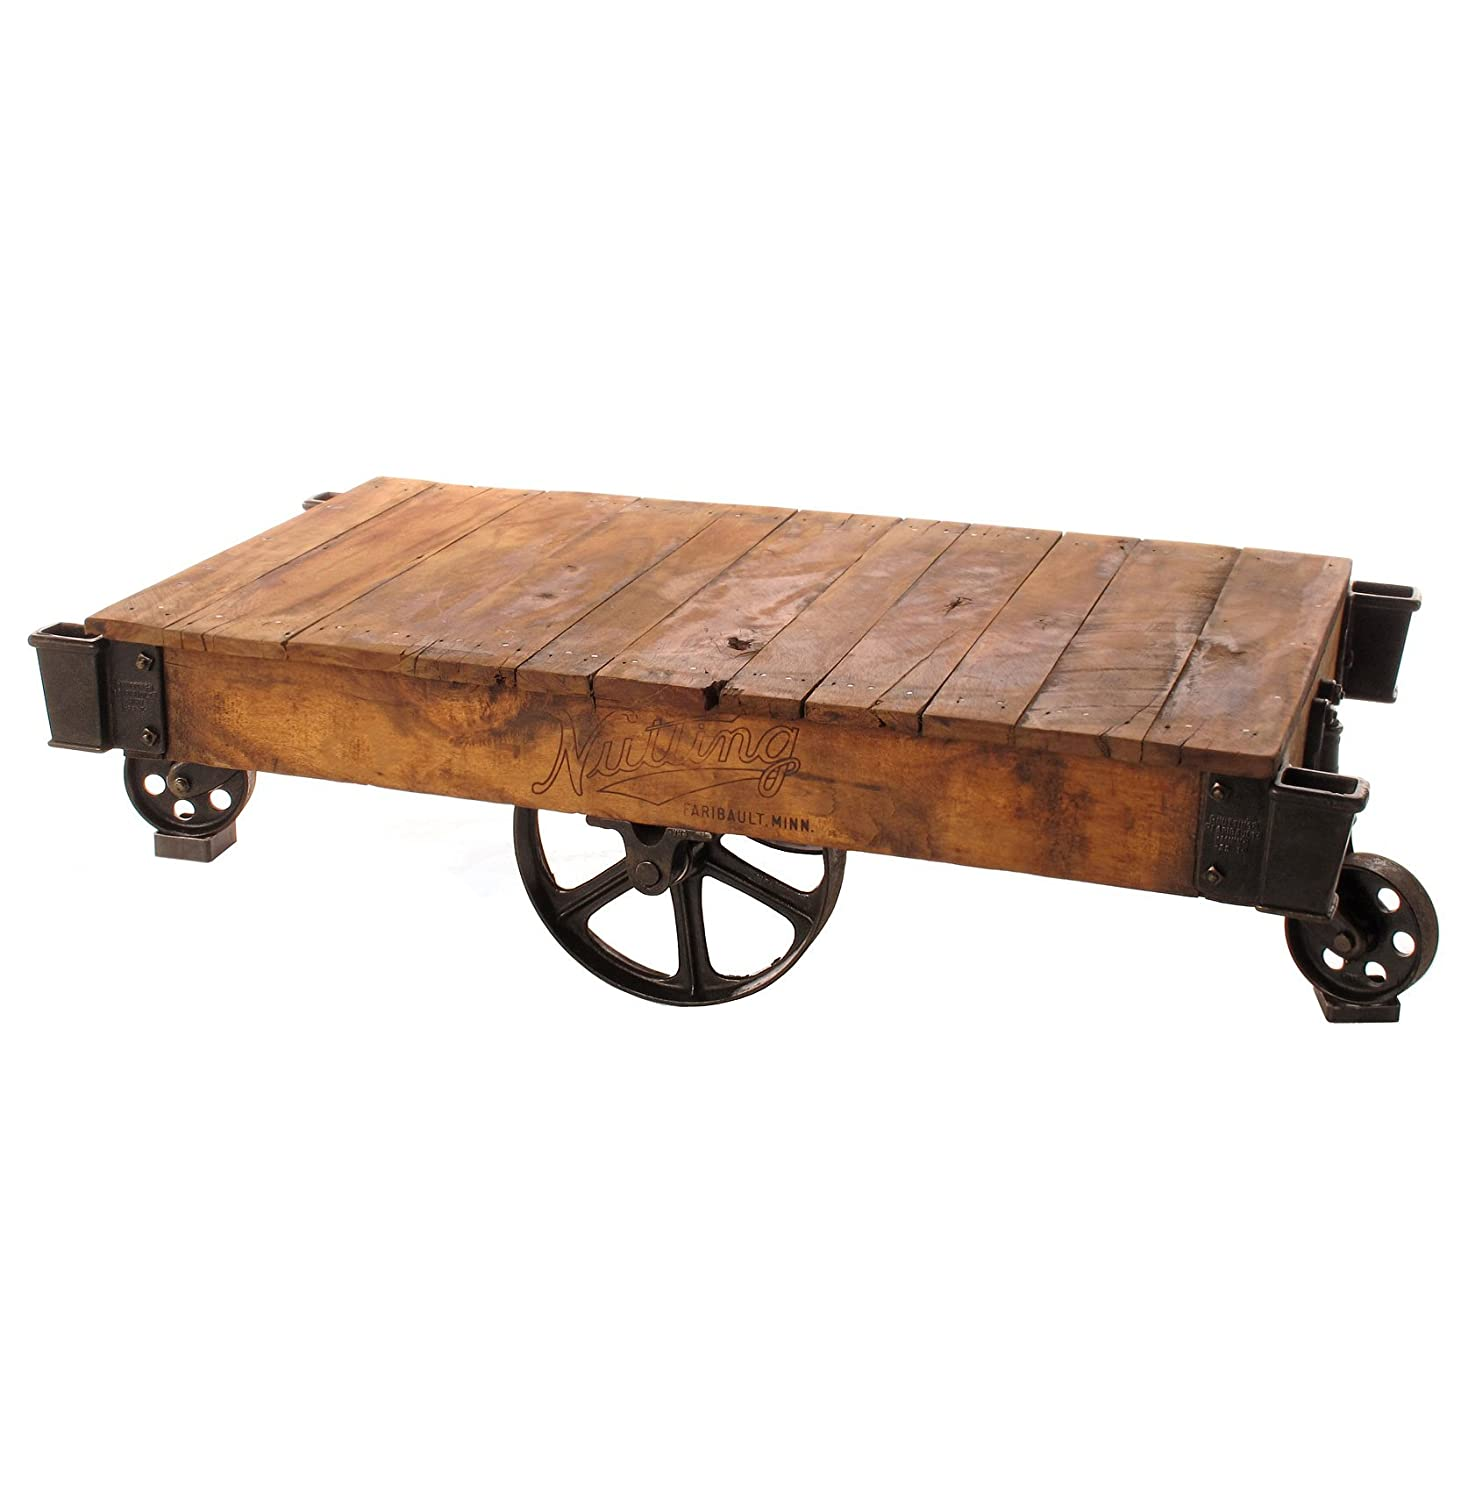 Rustic Industrial Urban Metal Distressed Coffee Table Made From Reclaimed Salvaged Wood